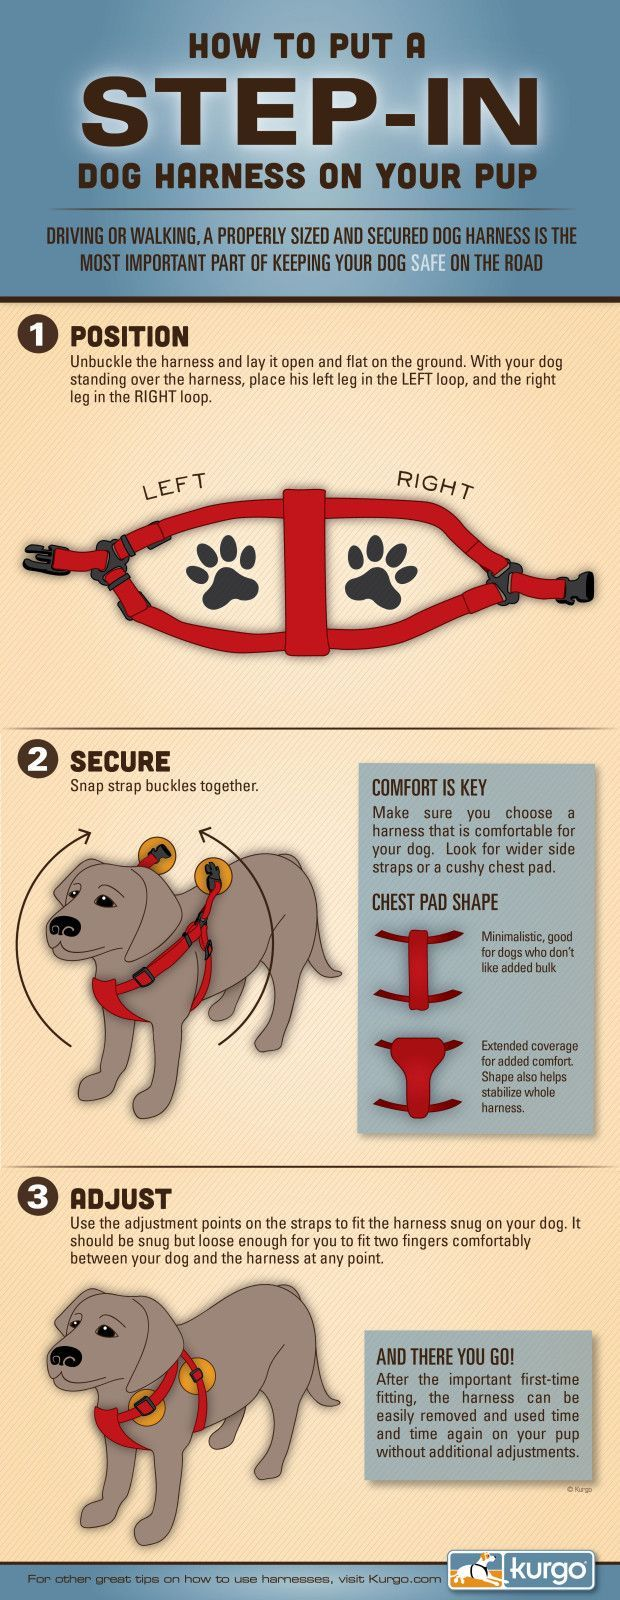 How to Put on a Step-In Dog Harnesshttp://www.kurgoblog.com/put-step-dog-harness/